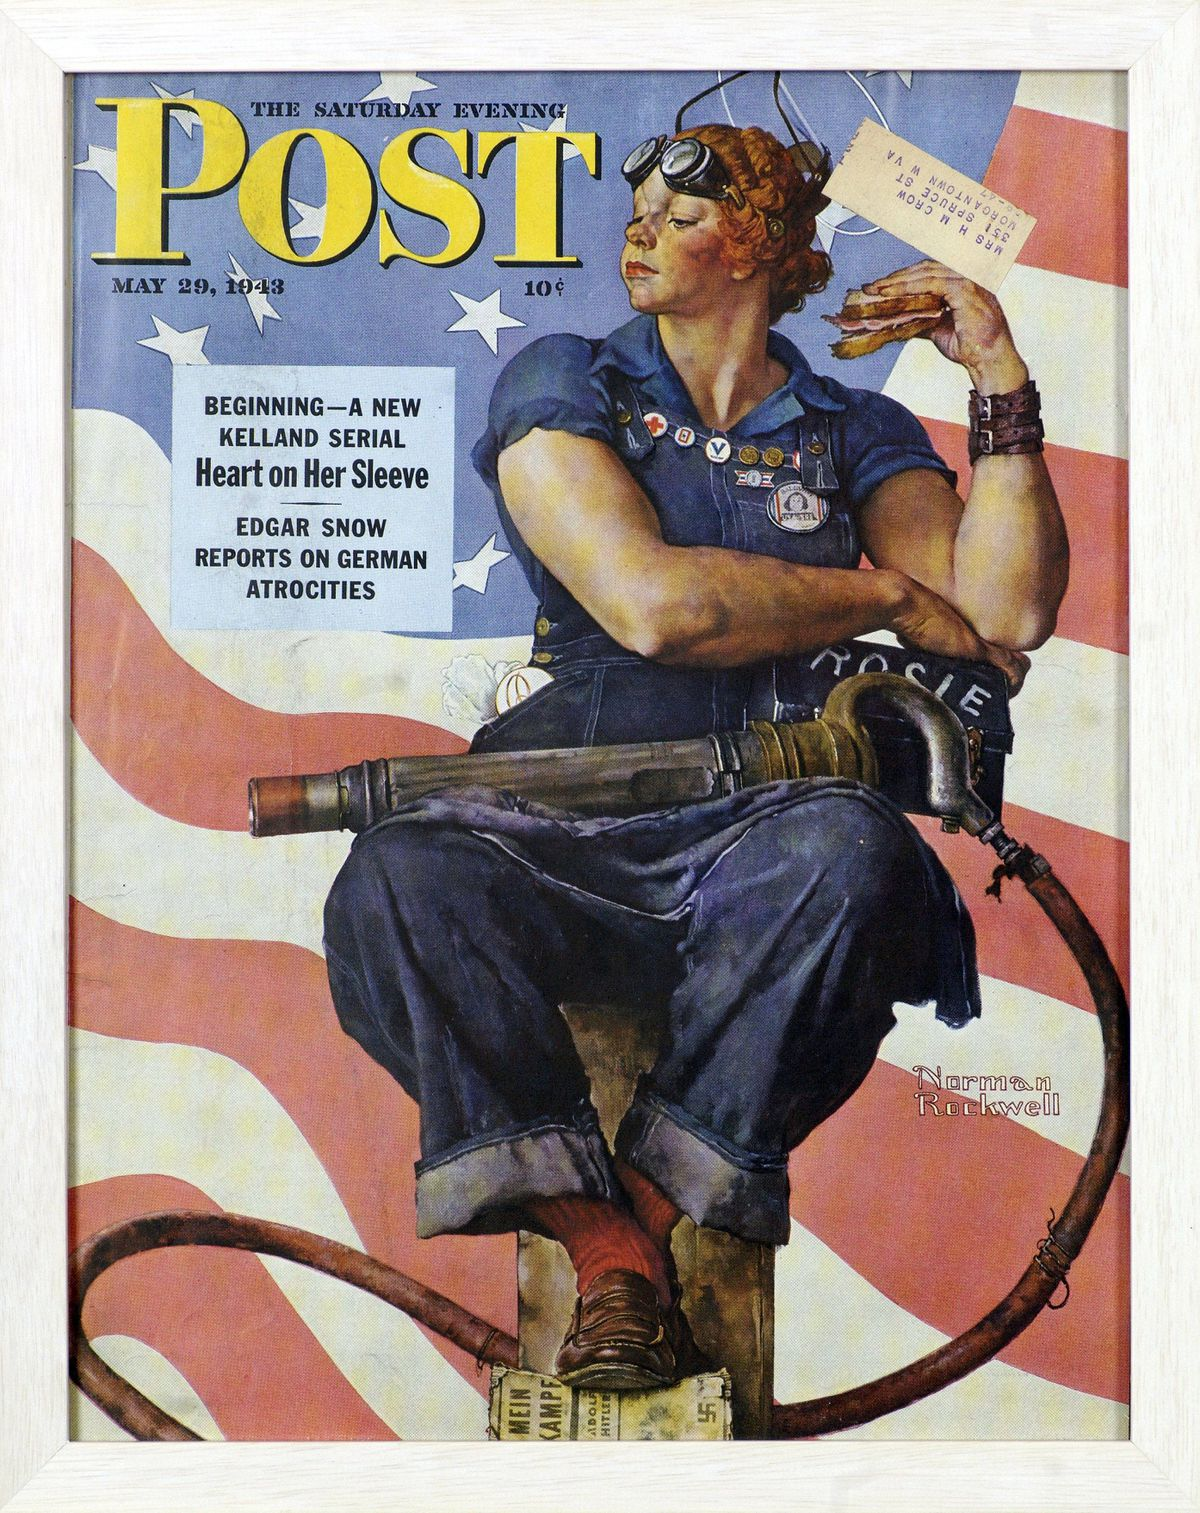 Rosie the Riveter Norman Rockwell, 1943 Tear Sheet. Cover illustration for The Saturday Evening Post, May 29, 1943.